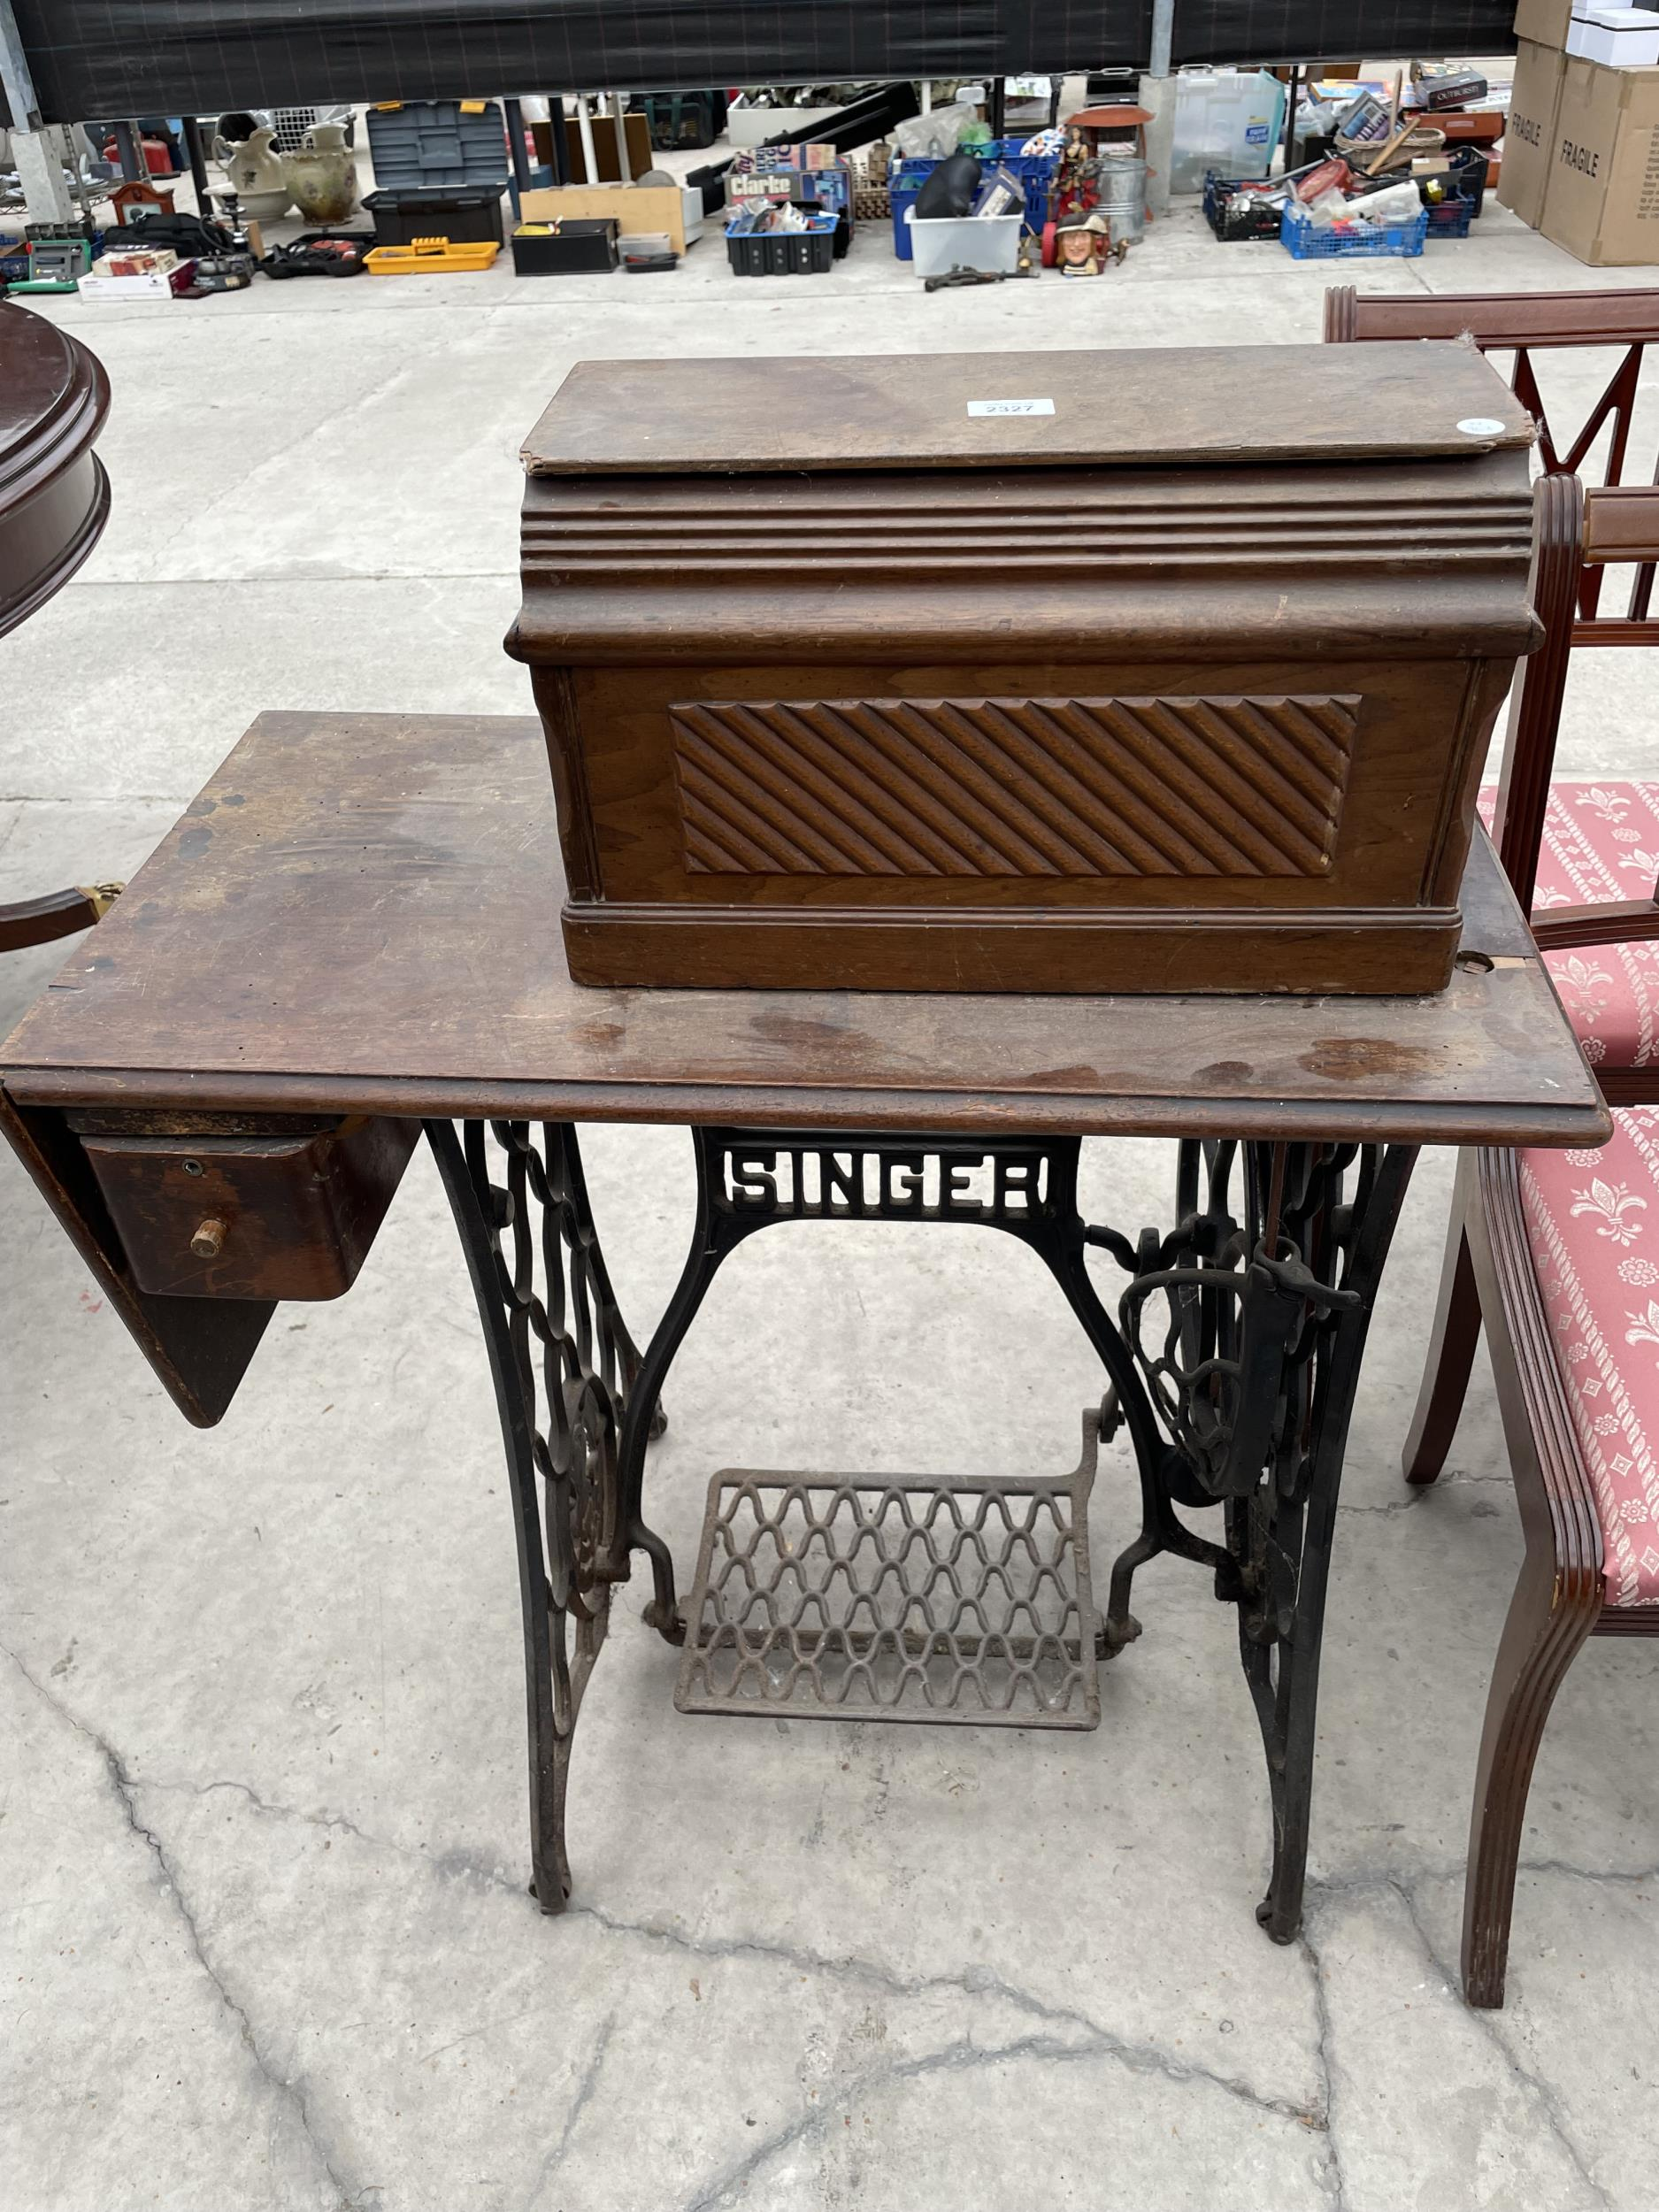 A SINGER TREADLE SEWING MACHINE - Image 3 of 4